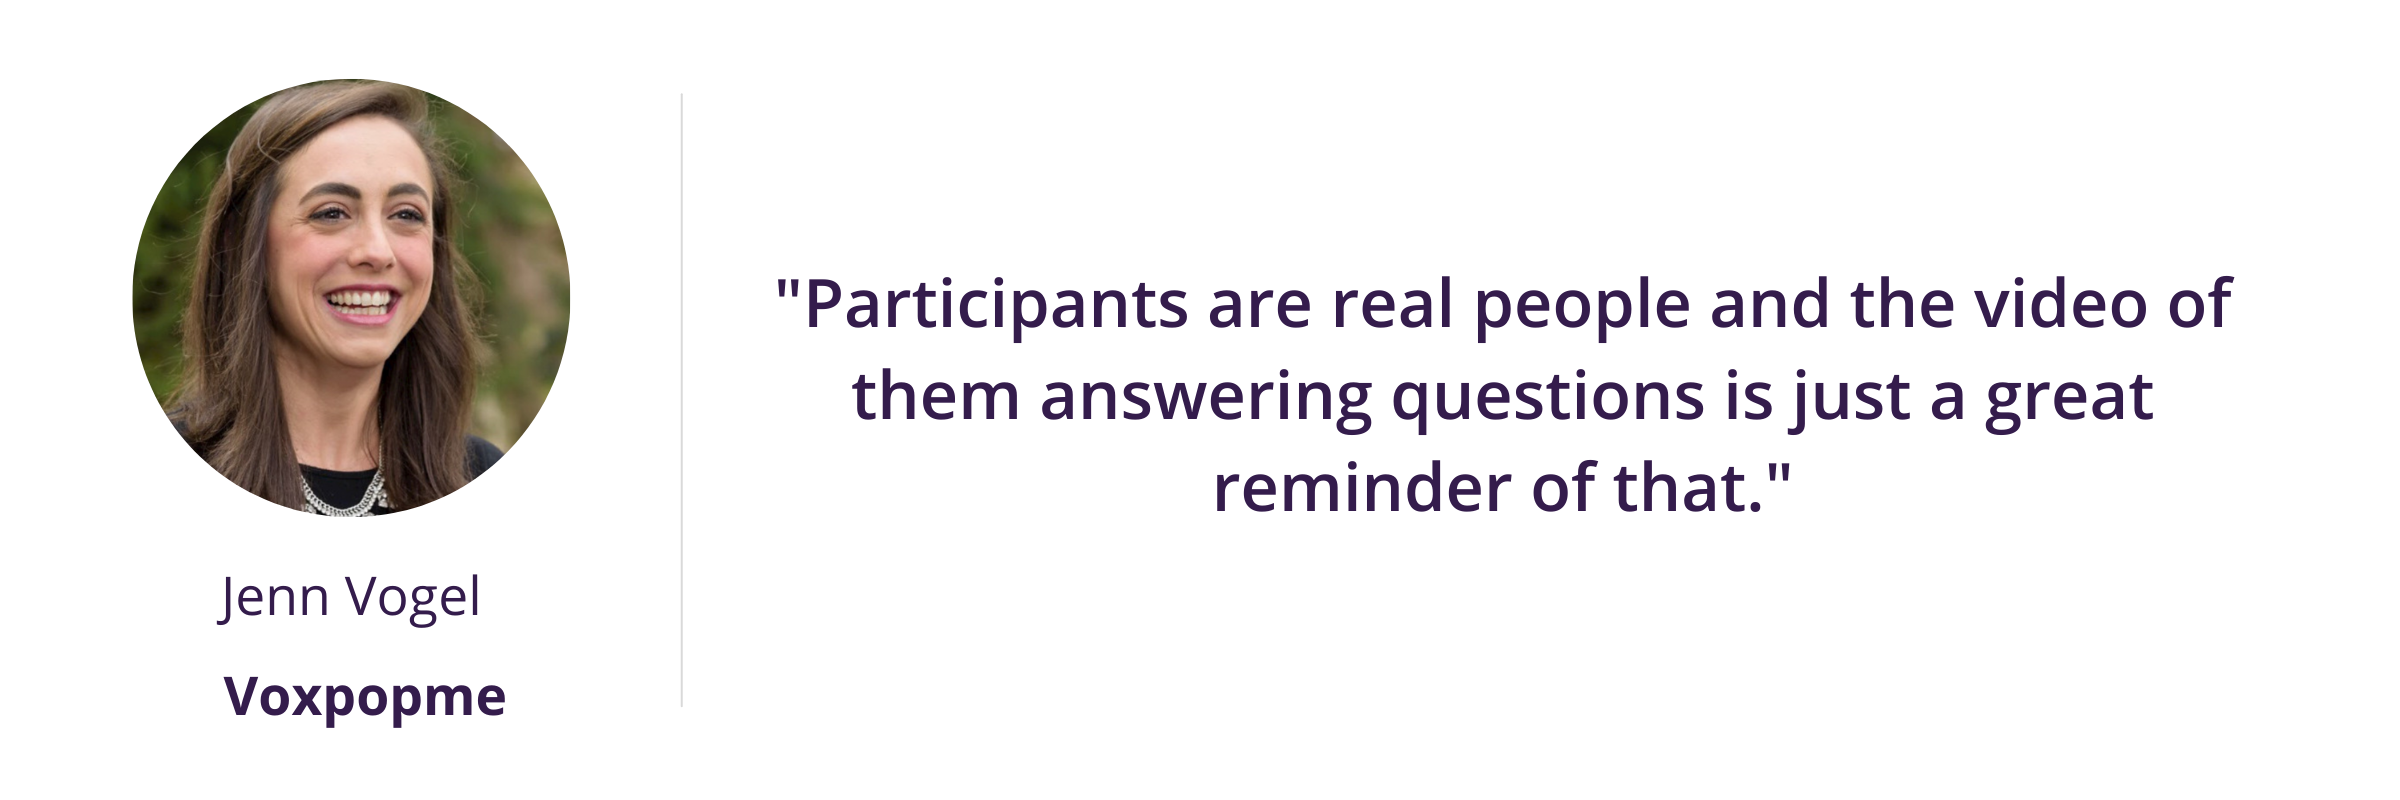 """""""Participants are real people and the video of them answering questions is just a great reminder of that."""""""